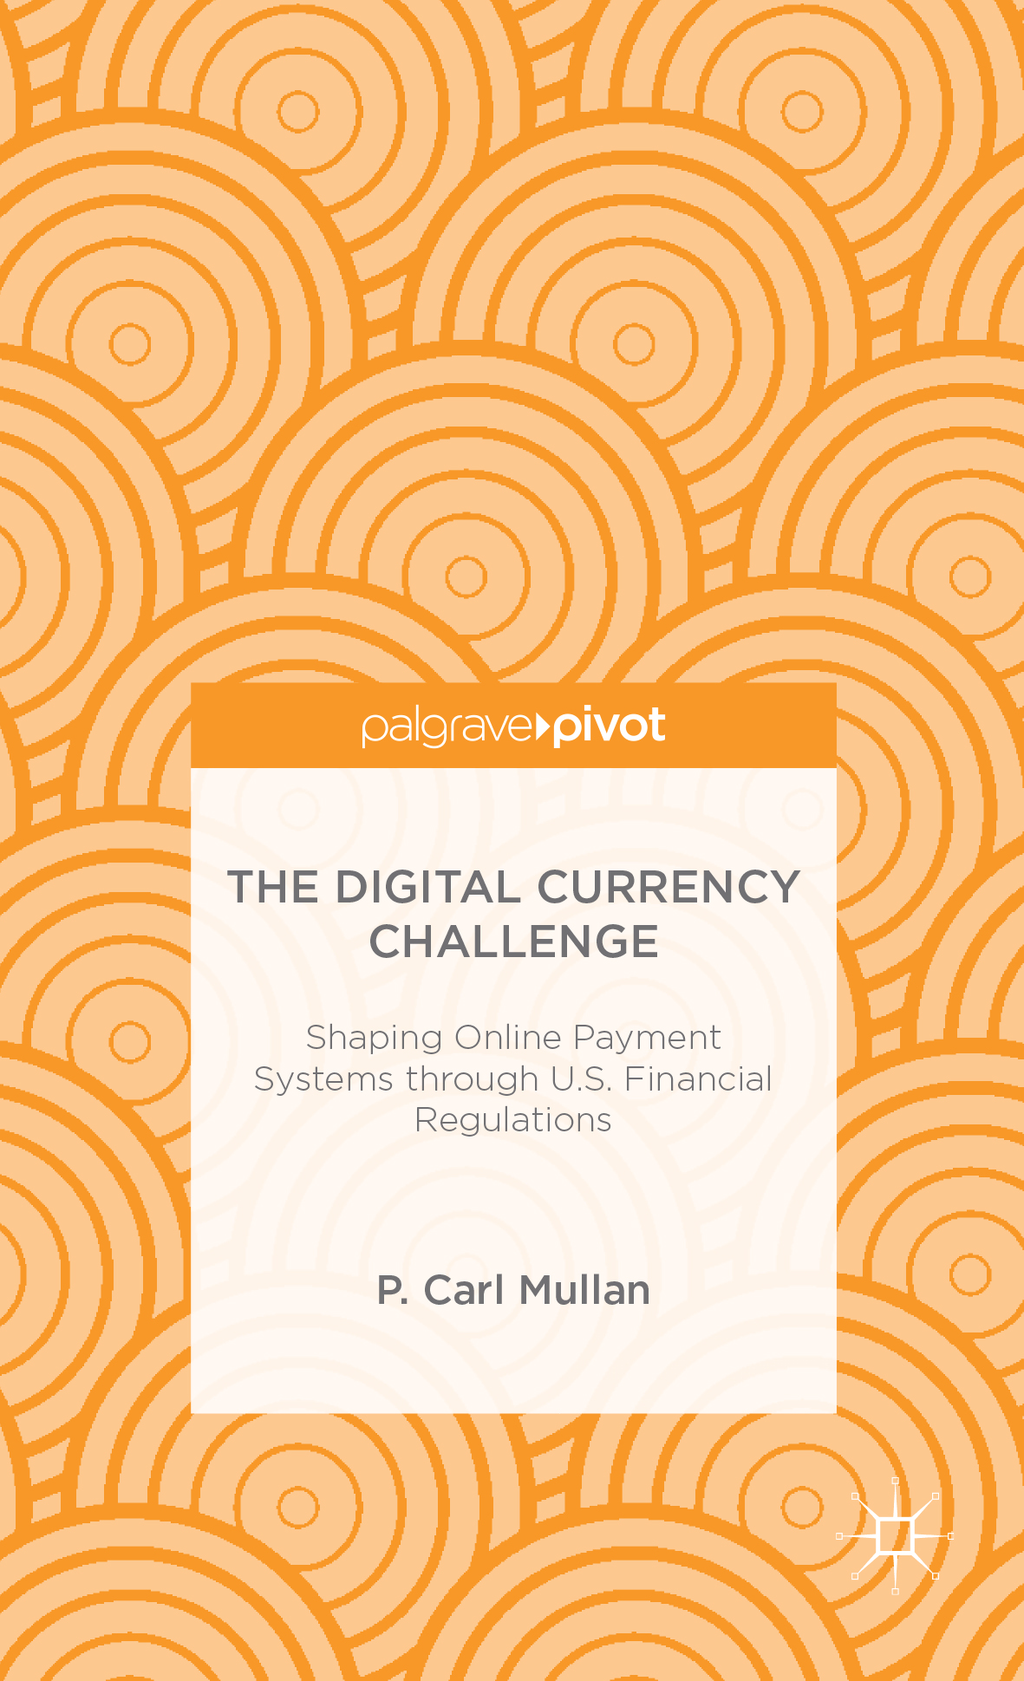 The Digital Currency Challenge Shaping Online Payment Systems through U.S. Financial Regulations